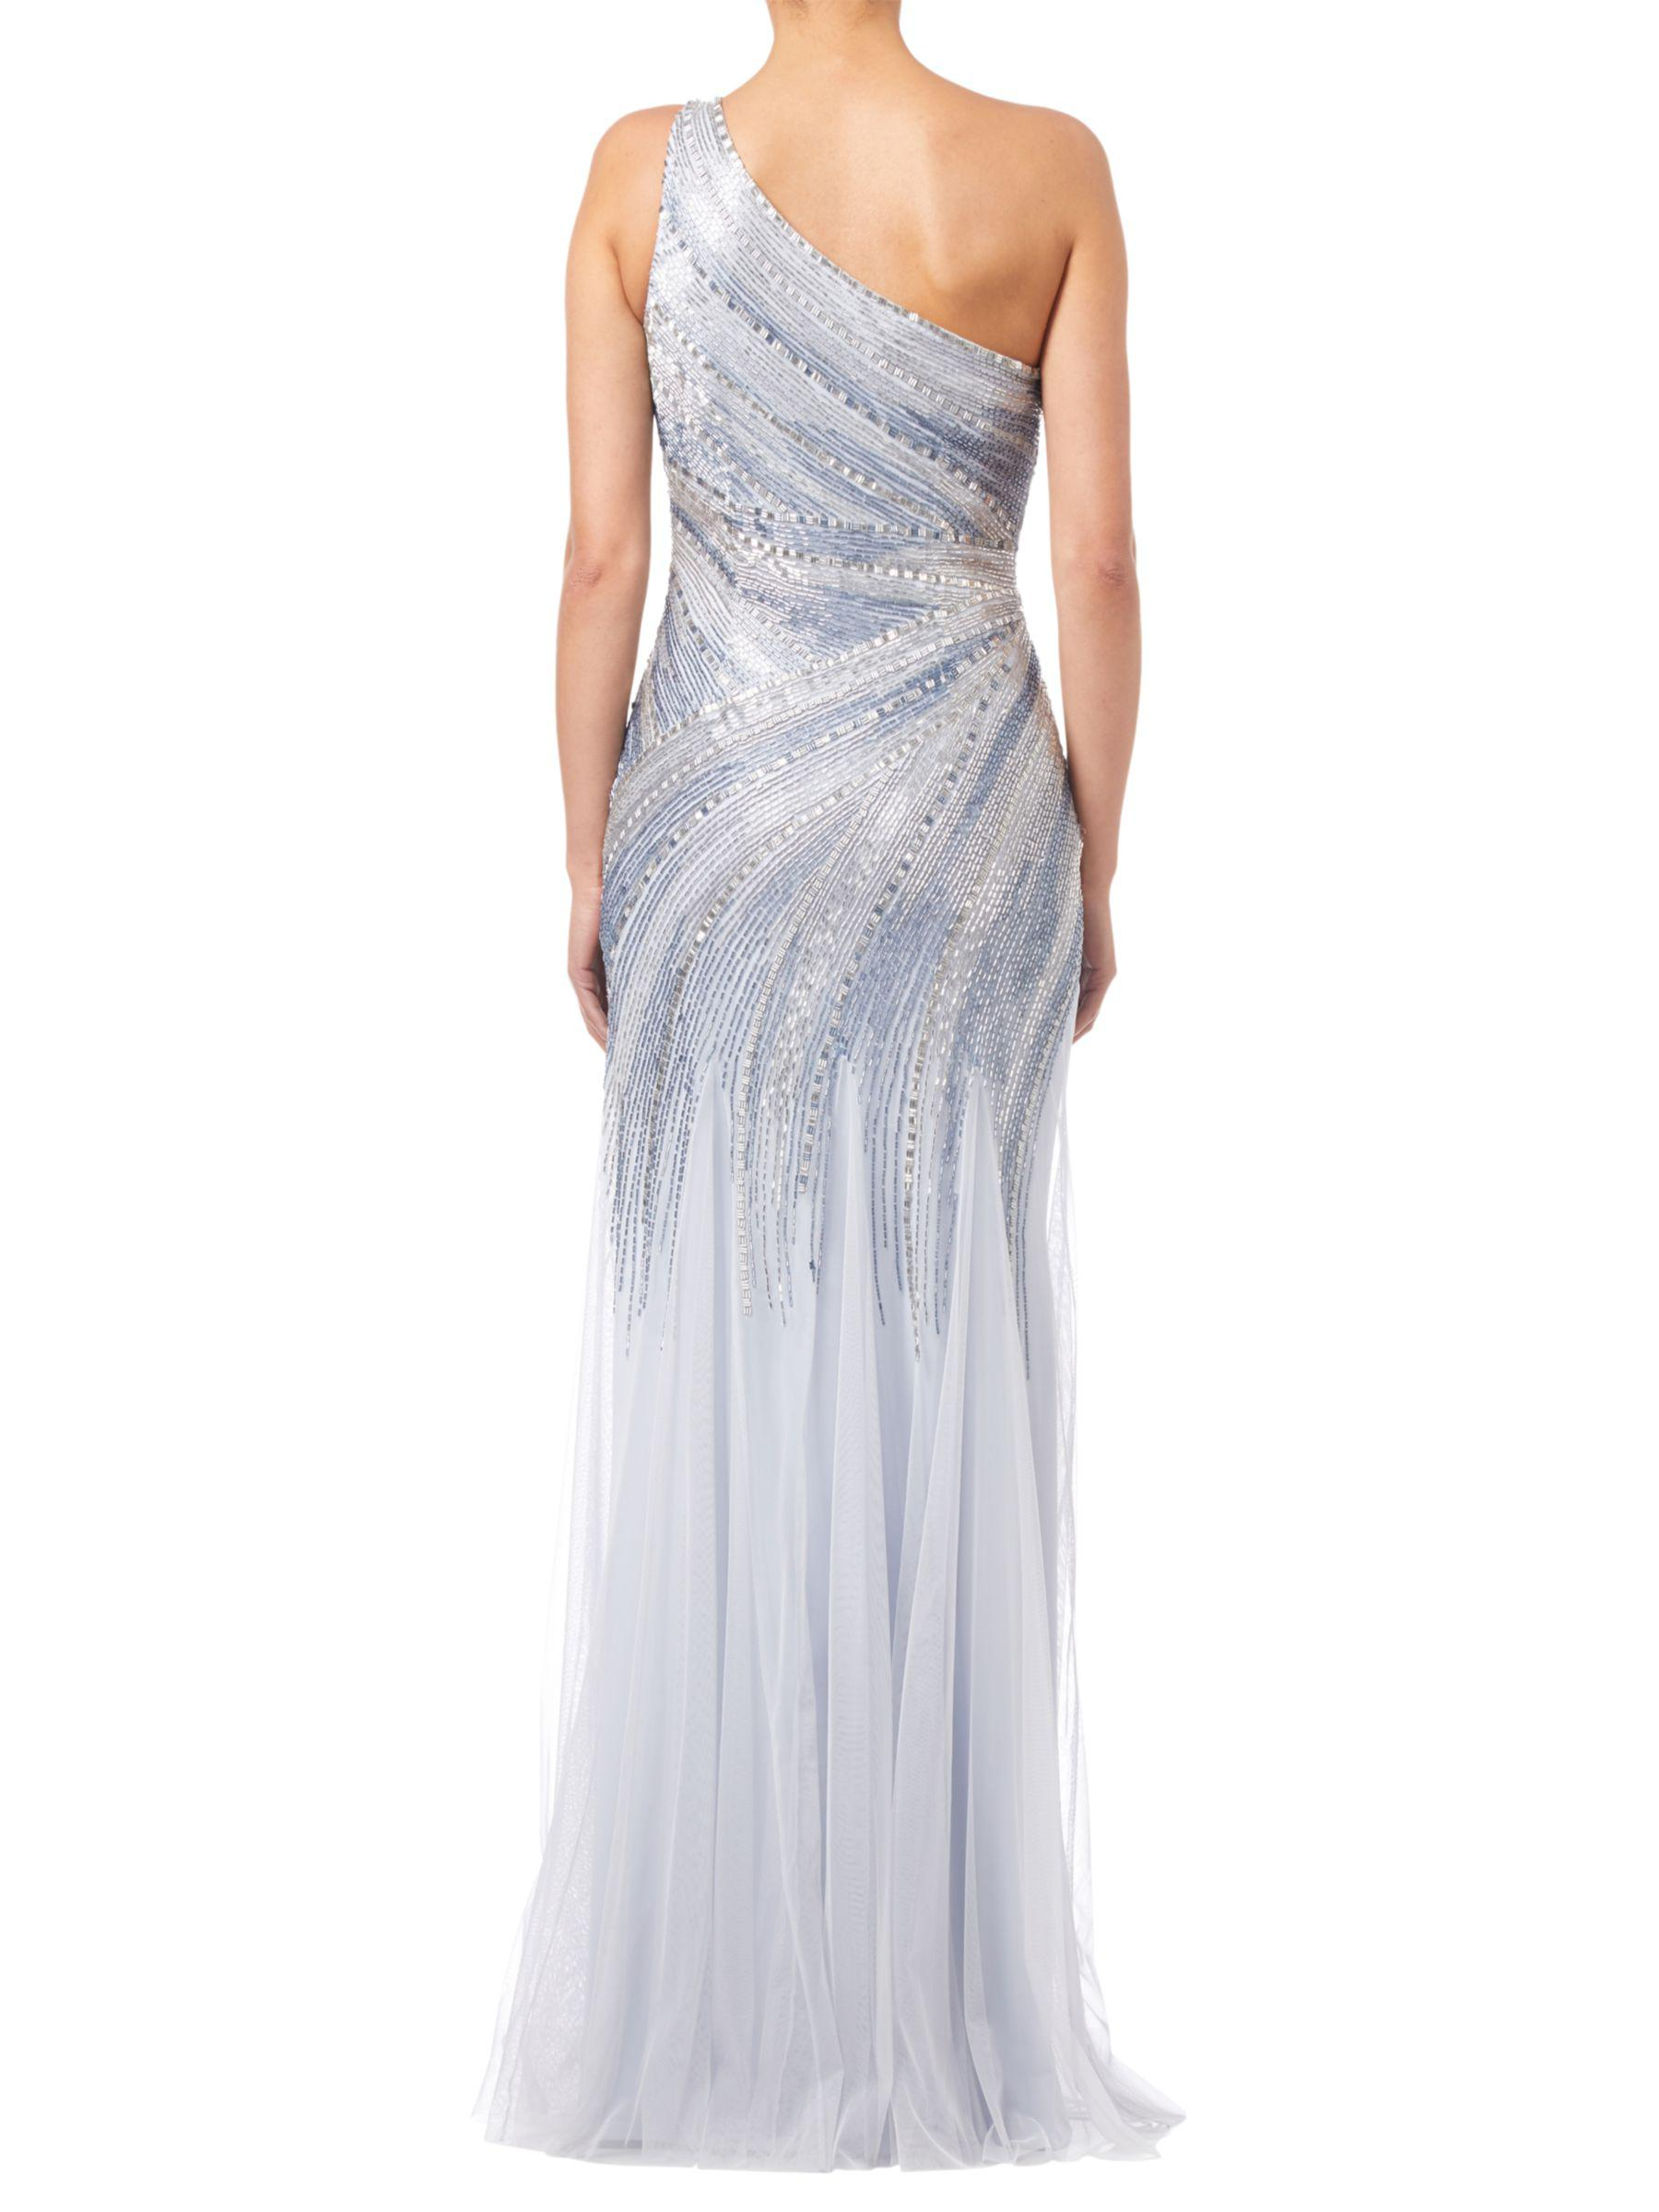 Lyst - Adrianna Papell Beaded Mermaid Gown in Blue